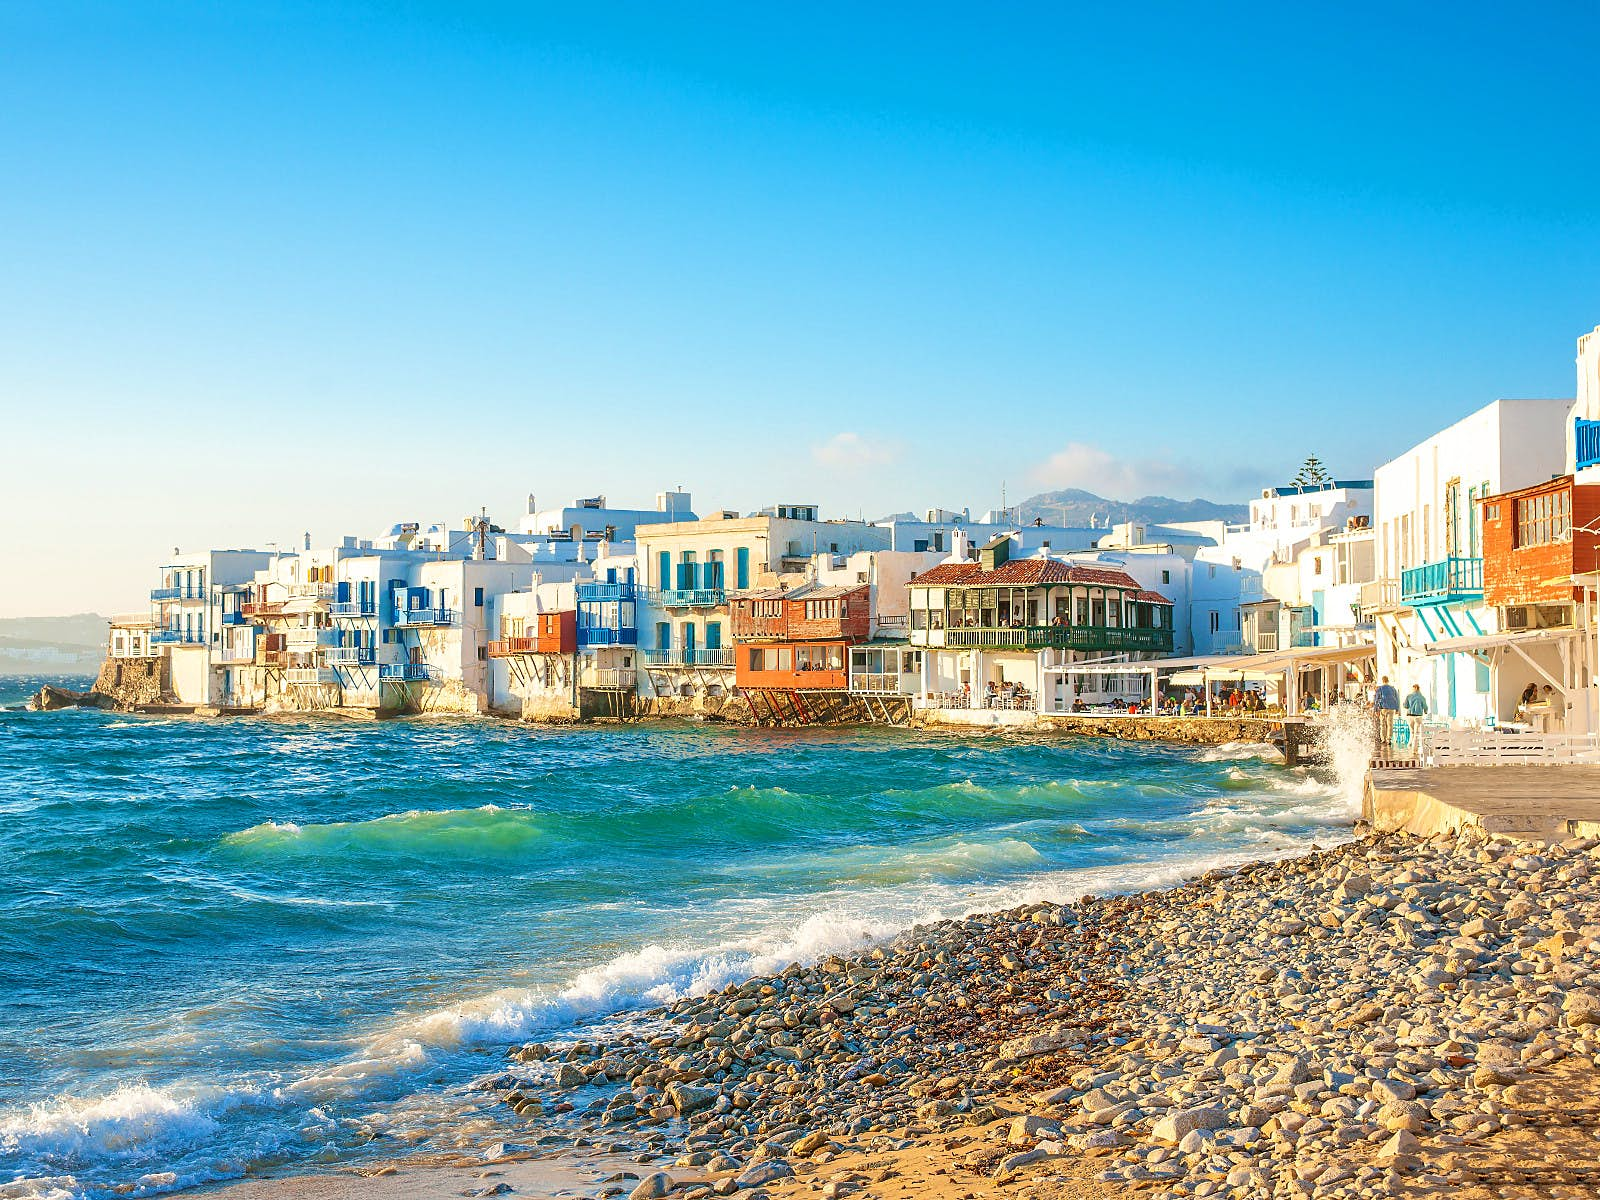 Little Venice Bay in Mykonos. There is a small stony beach in front of a choppy, blue sea. In the background there are white, clue and terracotta buildings, many have wooden balconies propped up on stilts.